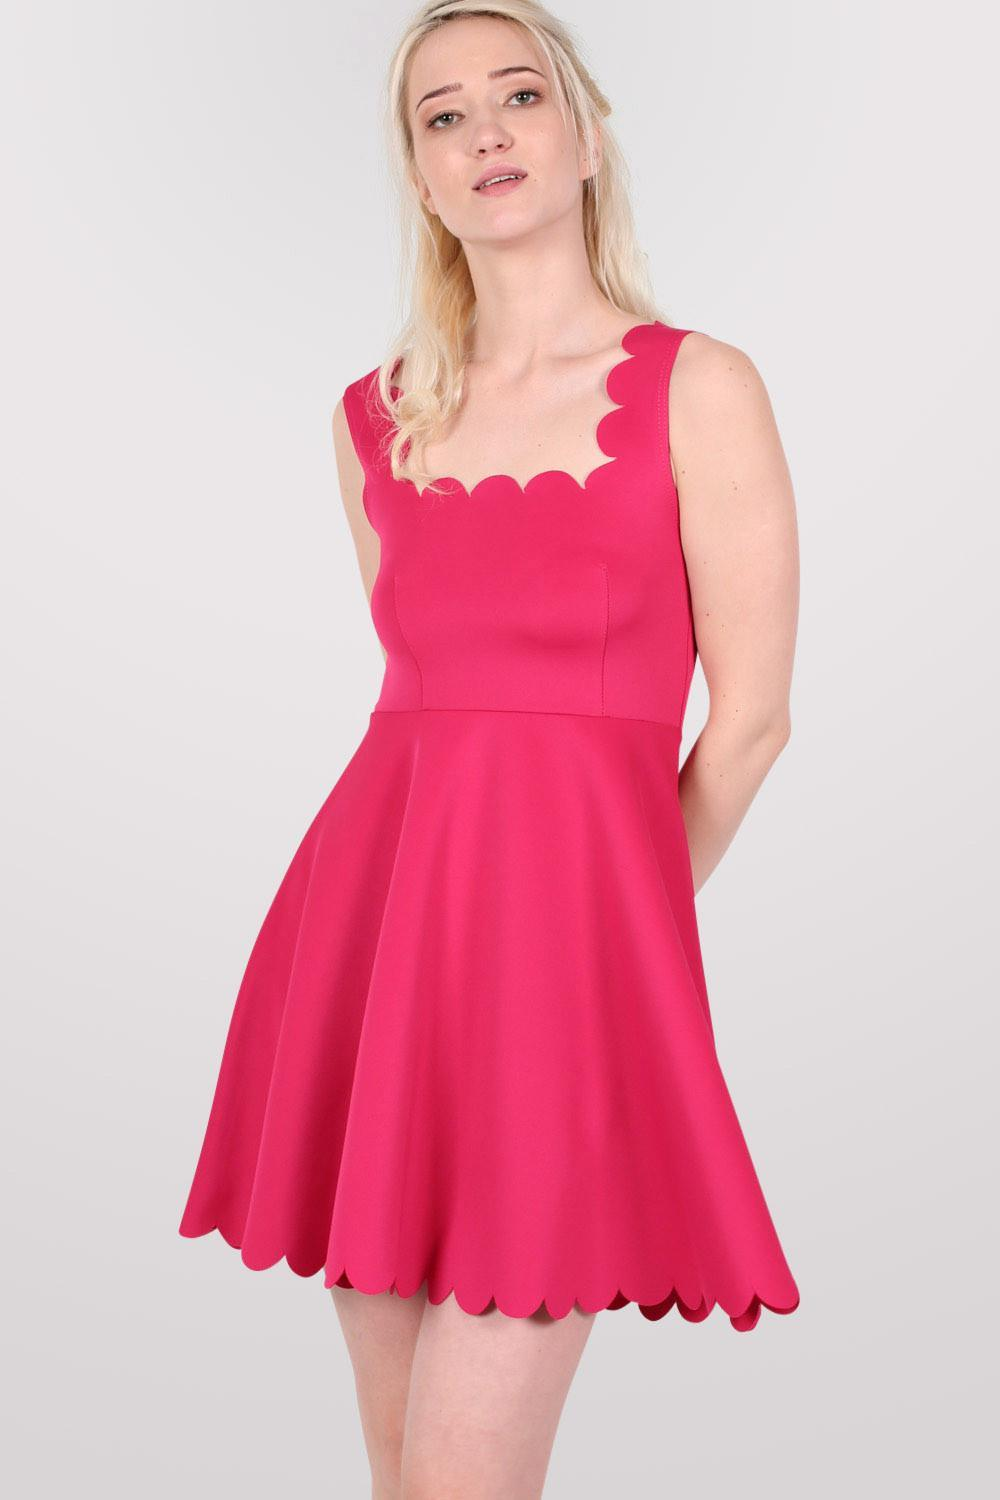 Scallop Edge Skater Dress in Cerise Pink 0